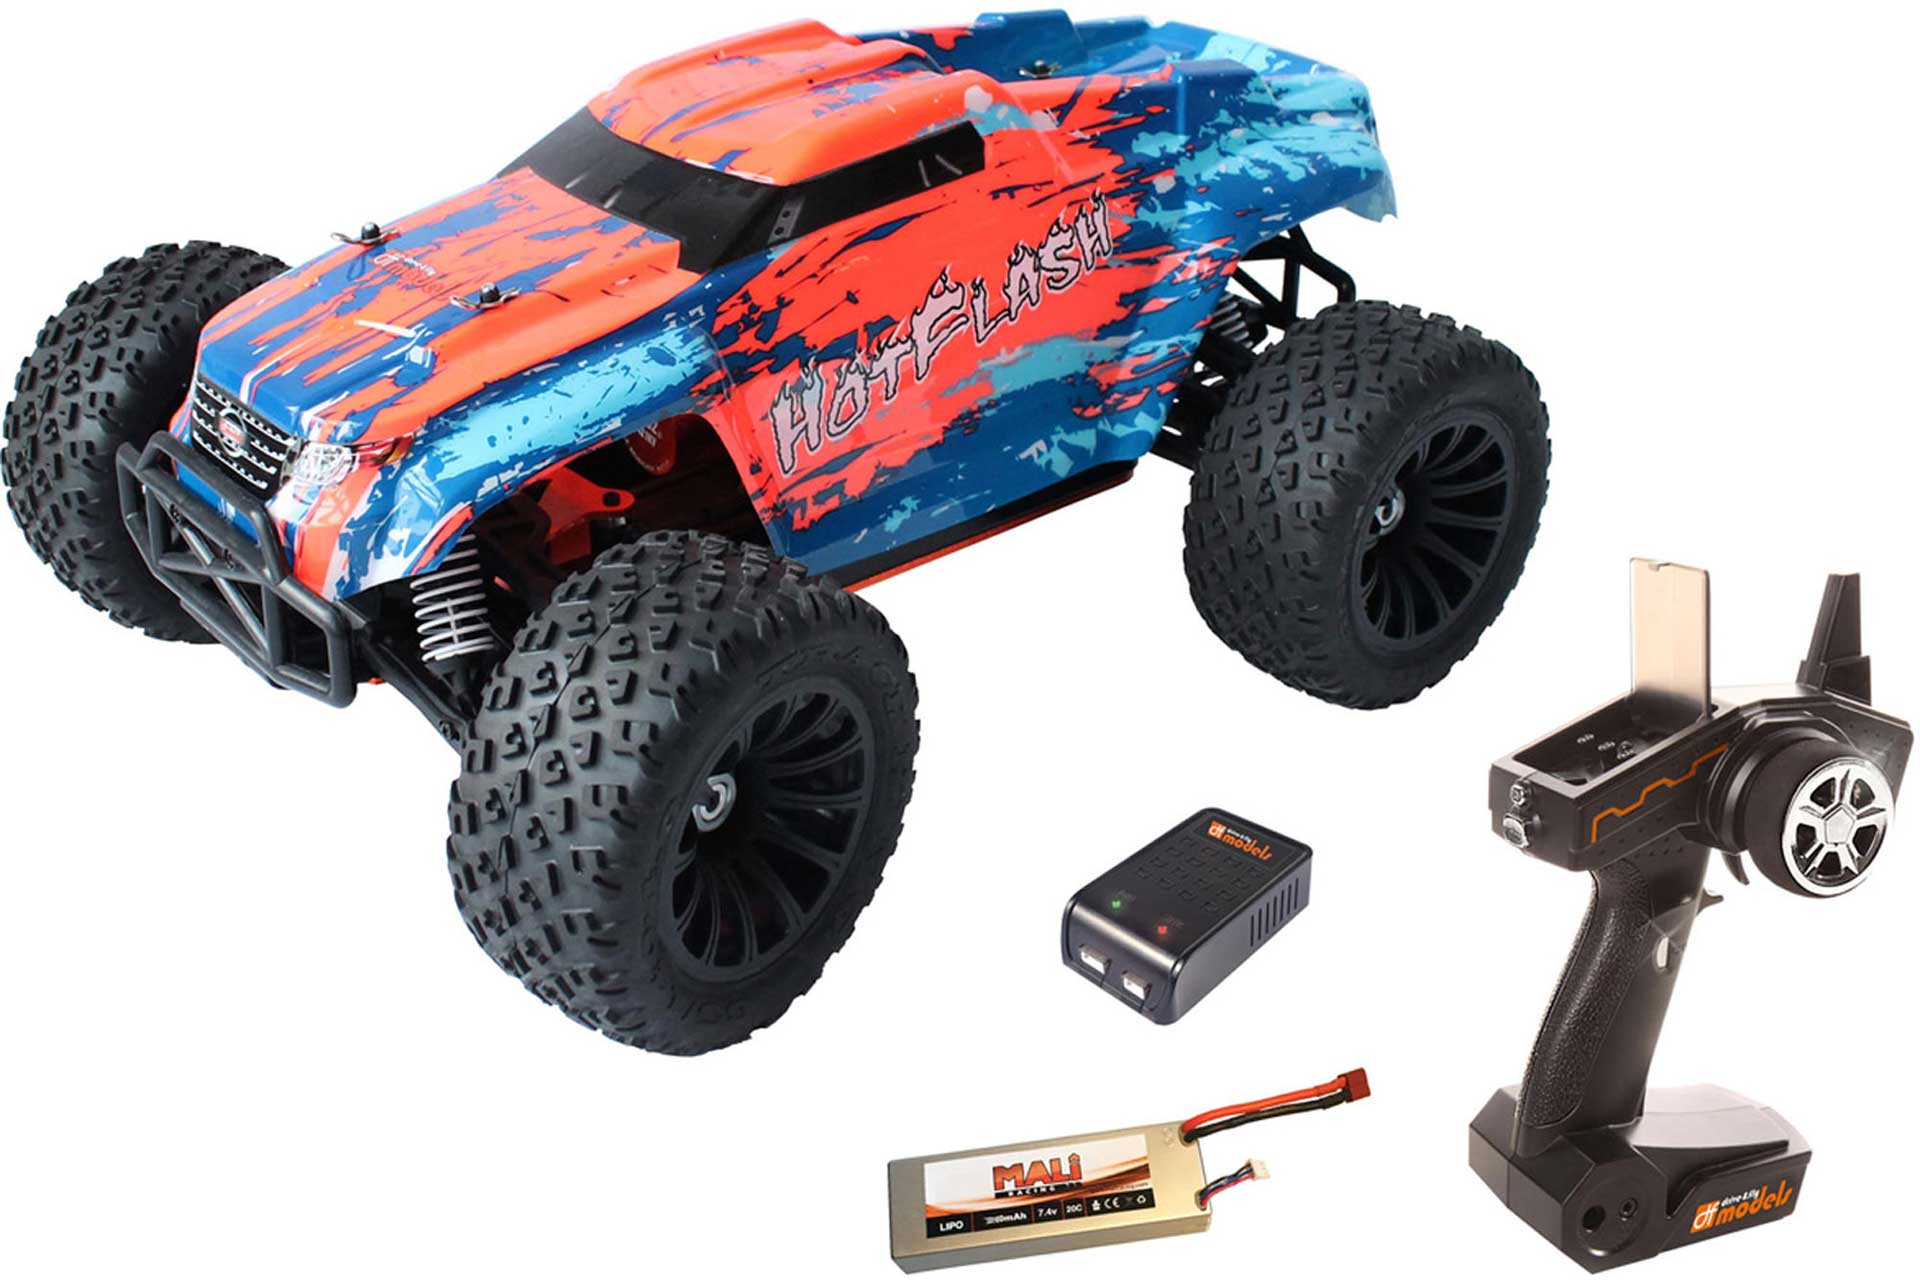 DRIVE & FLY MODELS HOT FLASH BRUSHLESS 1/10 XL TRUCK RTR 4WD